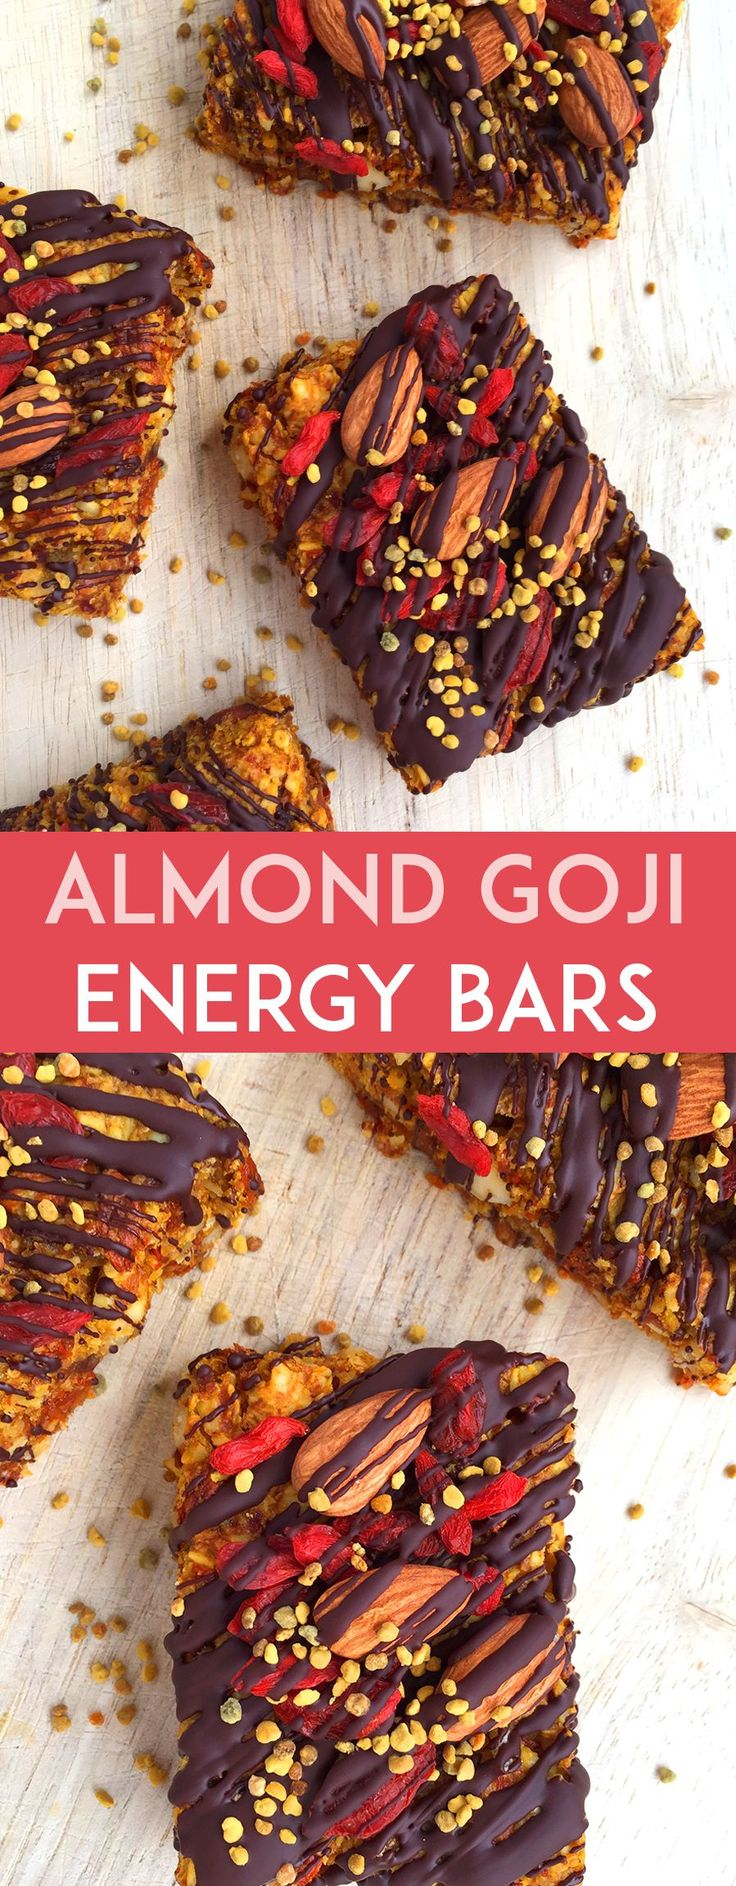 These grain-free Almond Goji Energy Bars are made of just nuts, fruit, coconut, eggs and love! (Drizzle with unsweetened chocolate if desired). All clean eating ingredients so pin this healthy energy bar recipe for later!